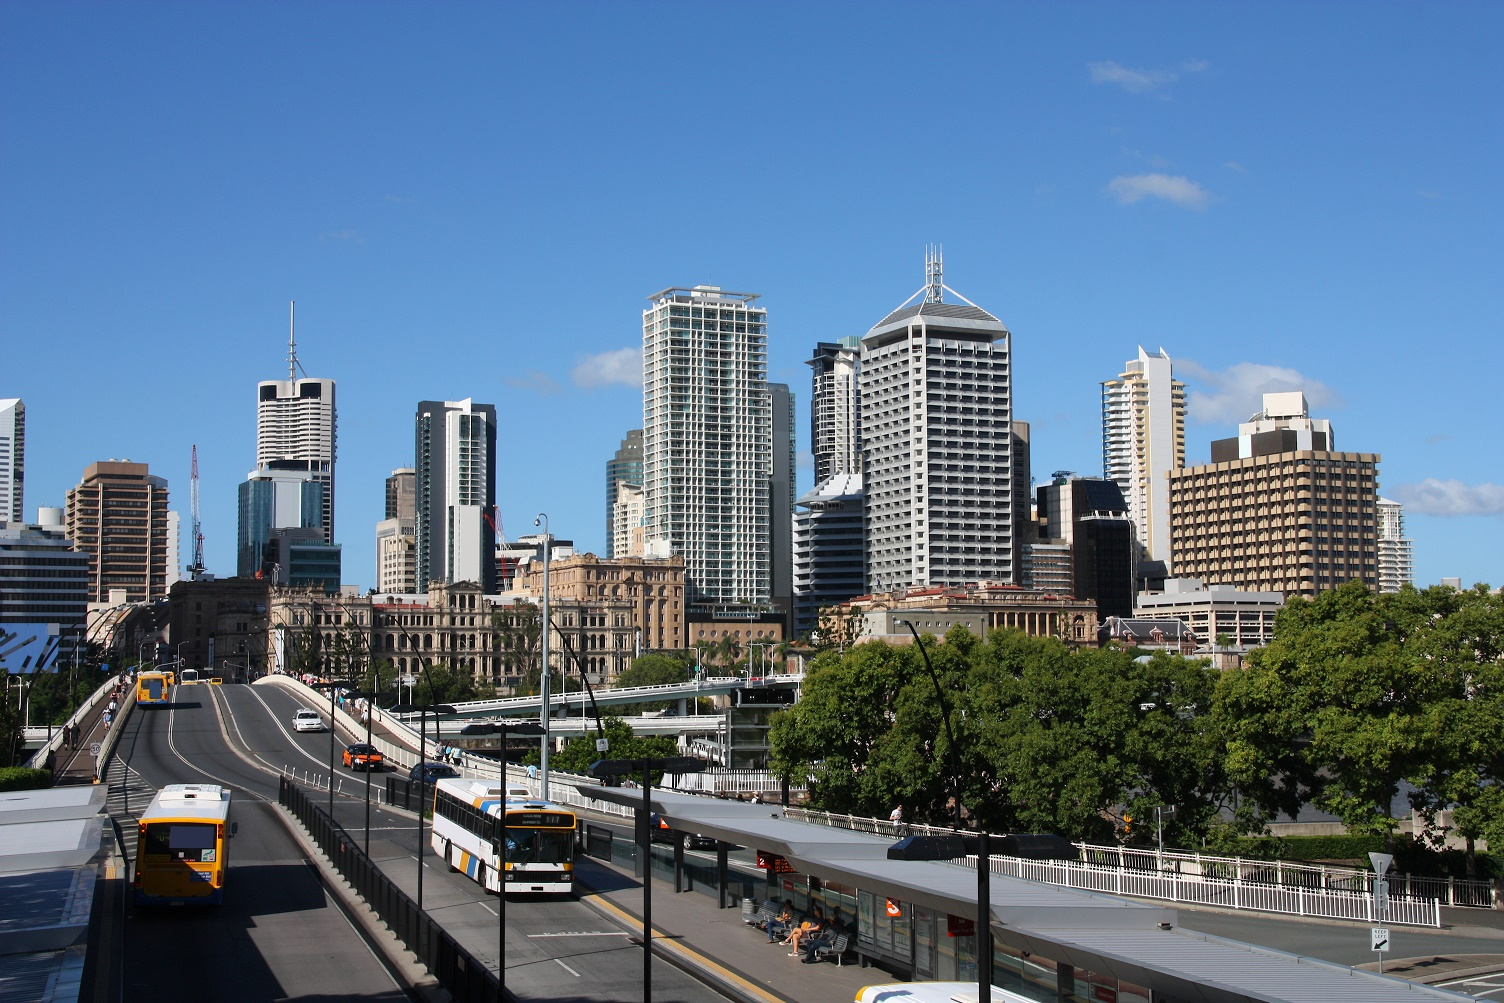 Established properties closer to the CBD have outperformed newer properties in the outer suburbs, both in capital growth and overall rental return.